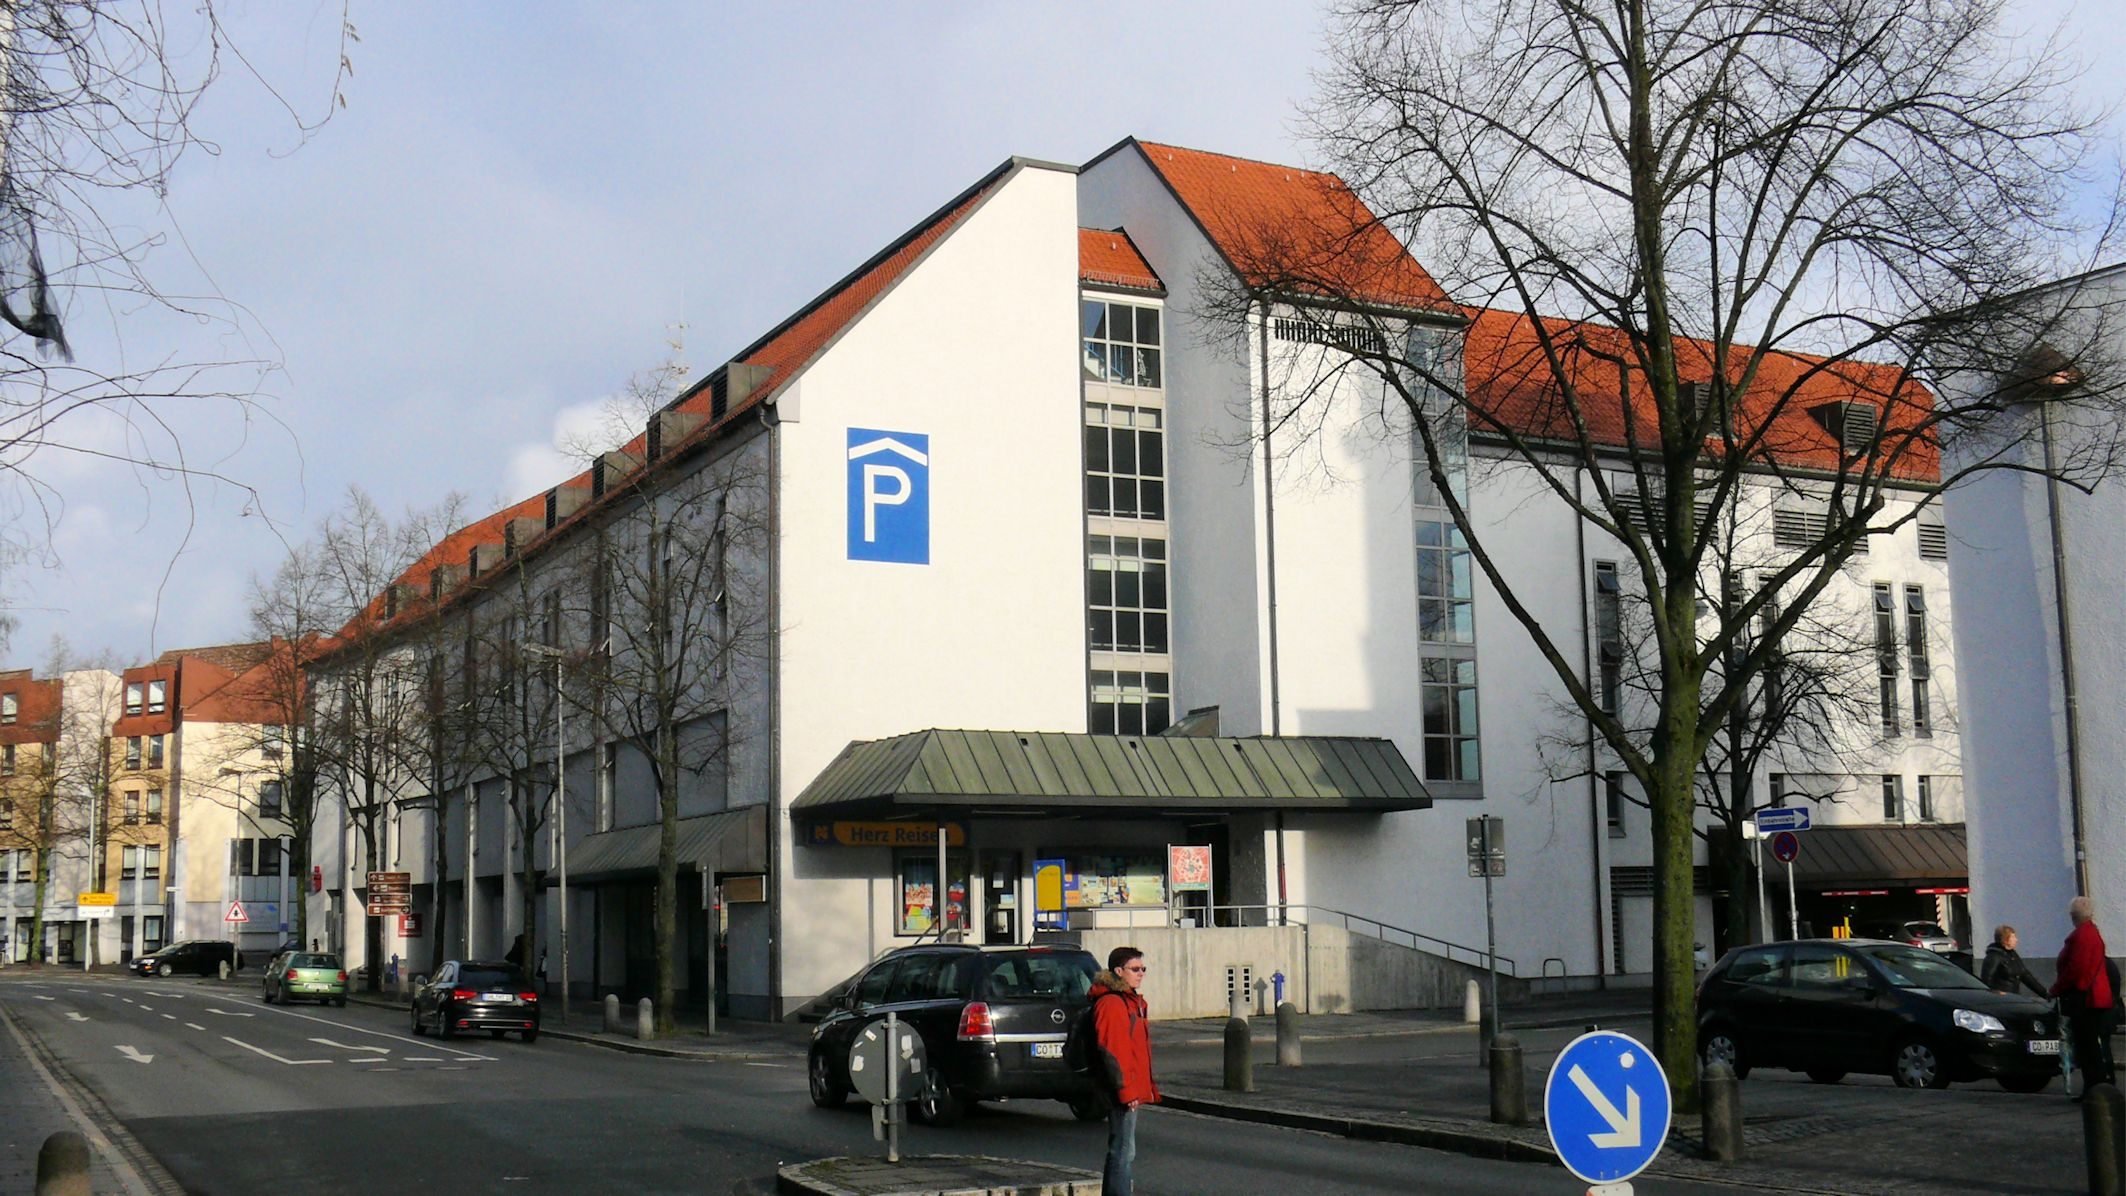 Parkhaus Post